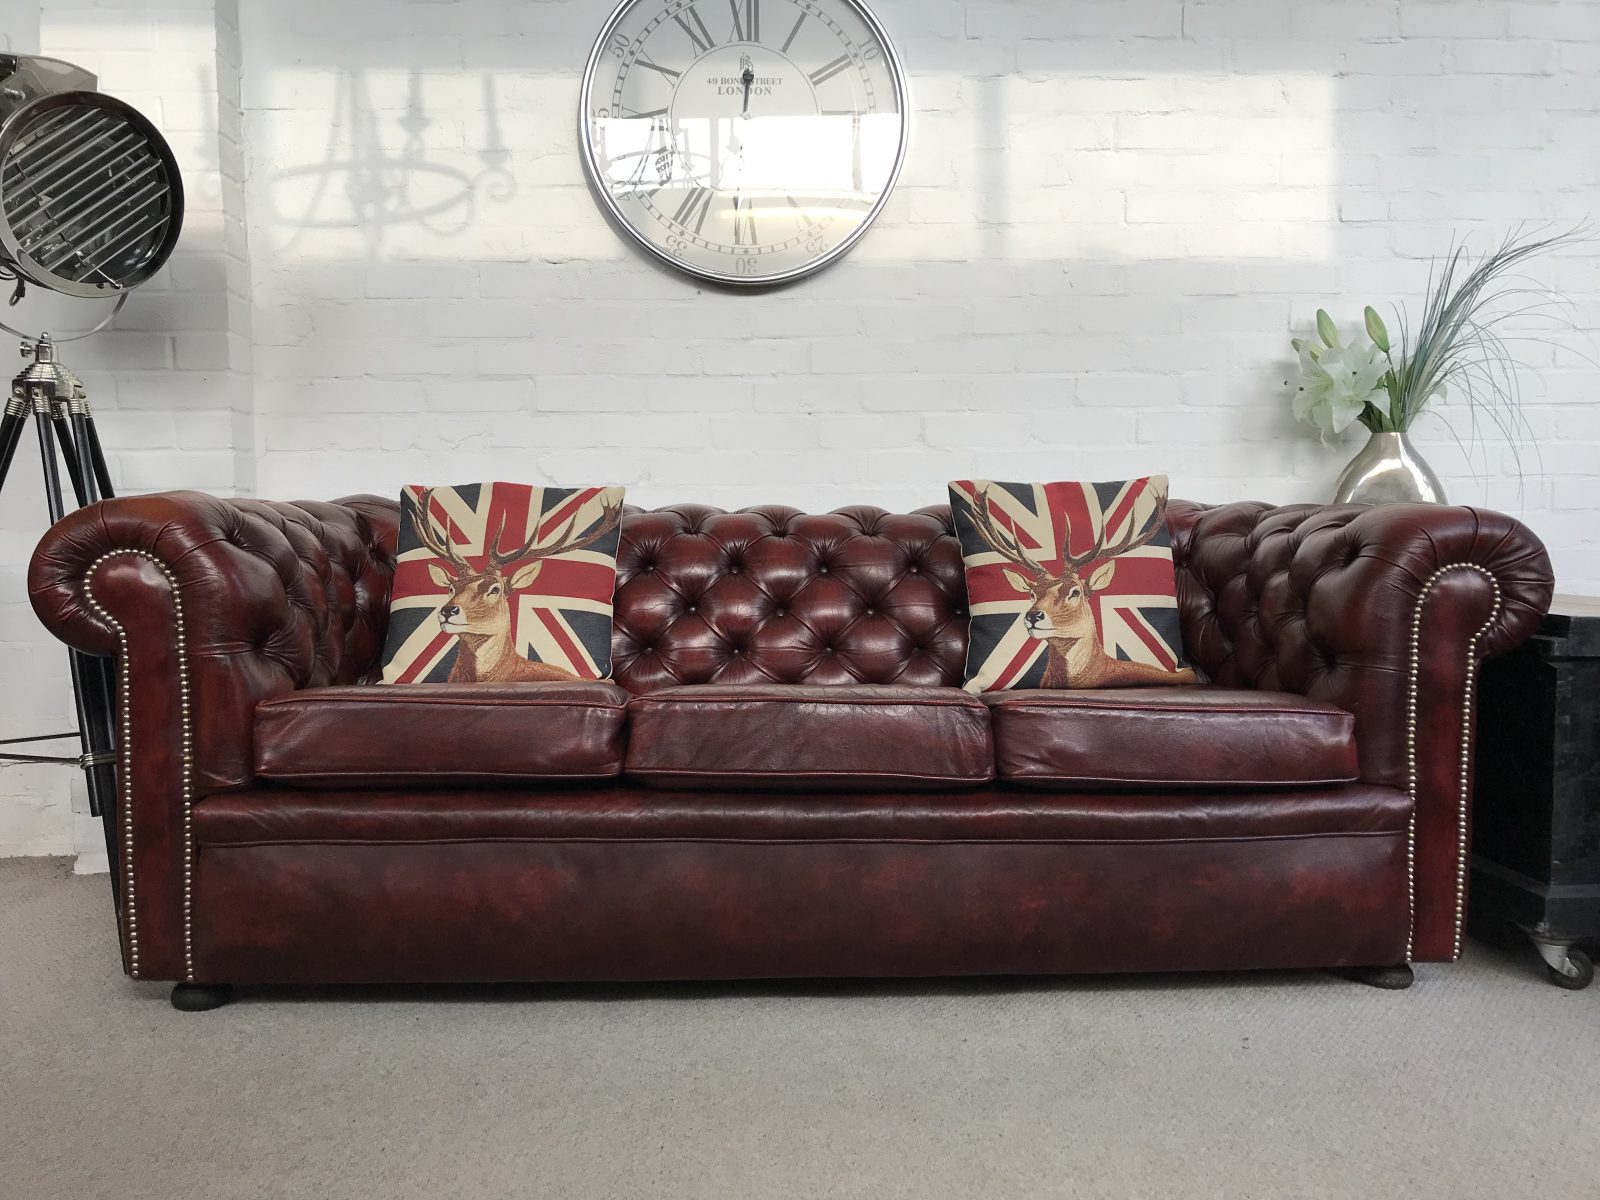 Outstanding Quality Vintage Chesterfield Sofa…..SOLD.